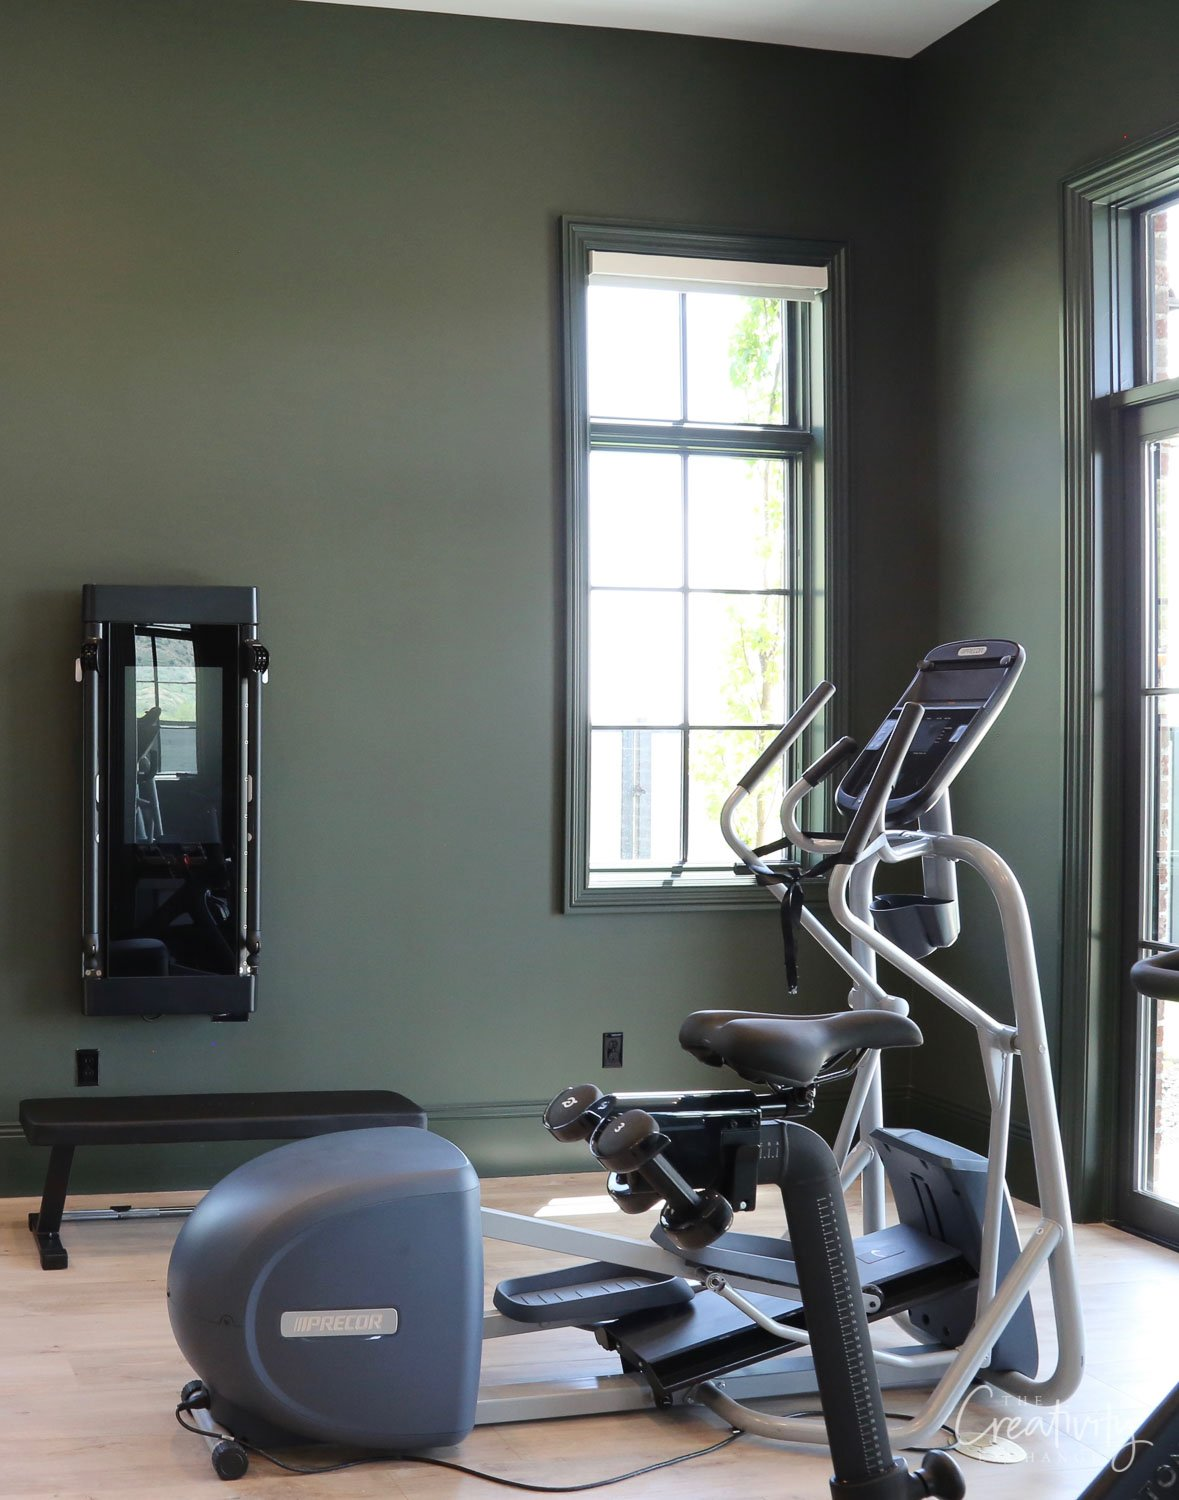 Wall color is Sherwin Williams Laurel Wood